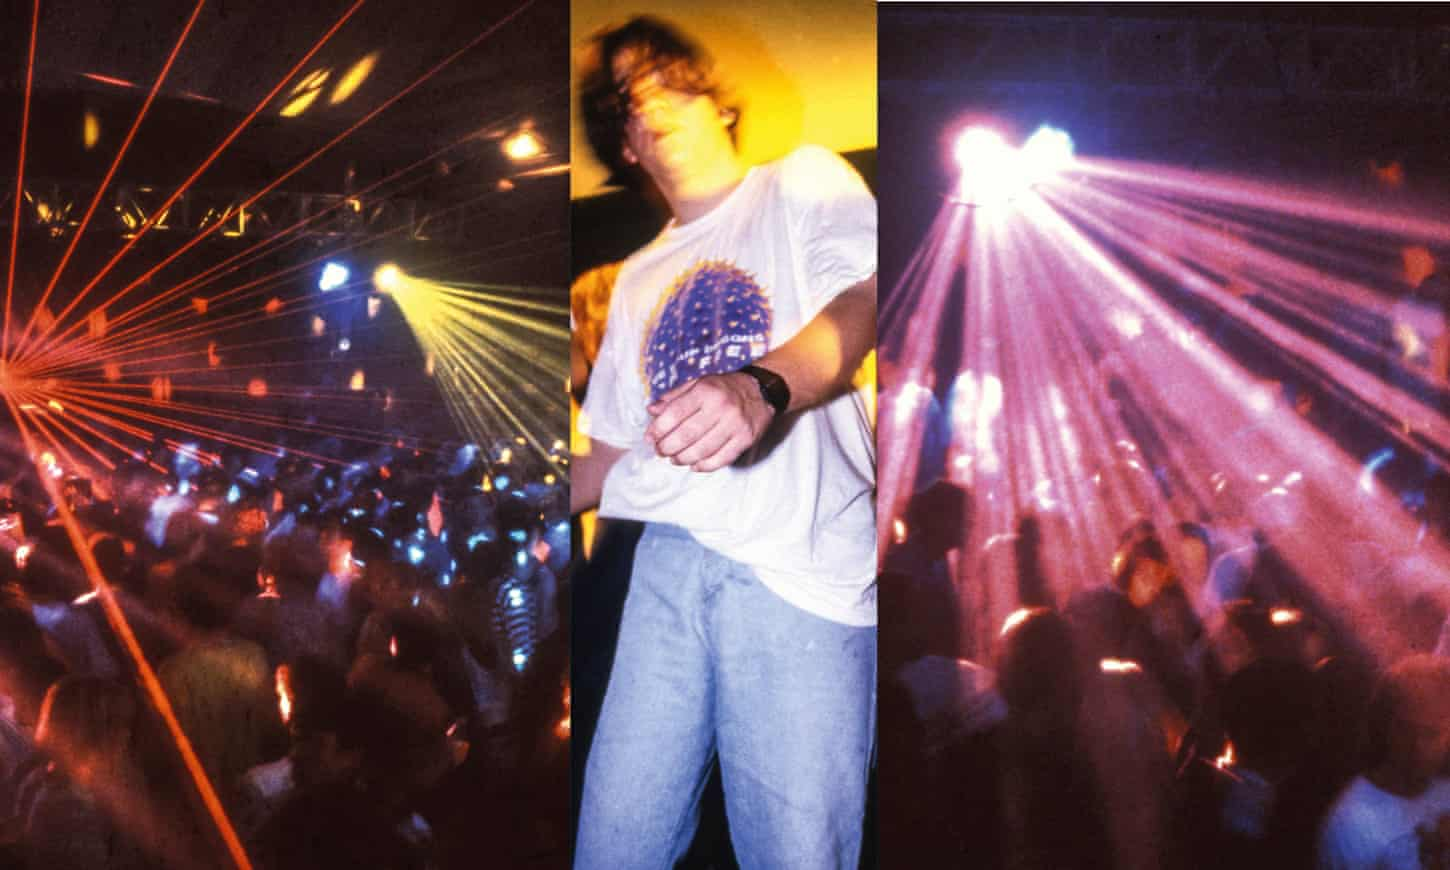 Jeremy Deller on raving: 'Stormzy and Dave give me hope'